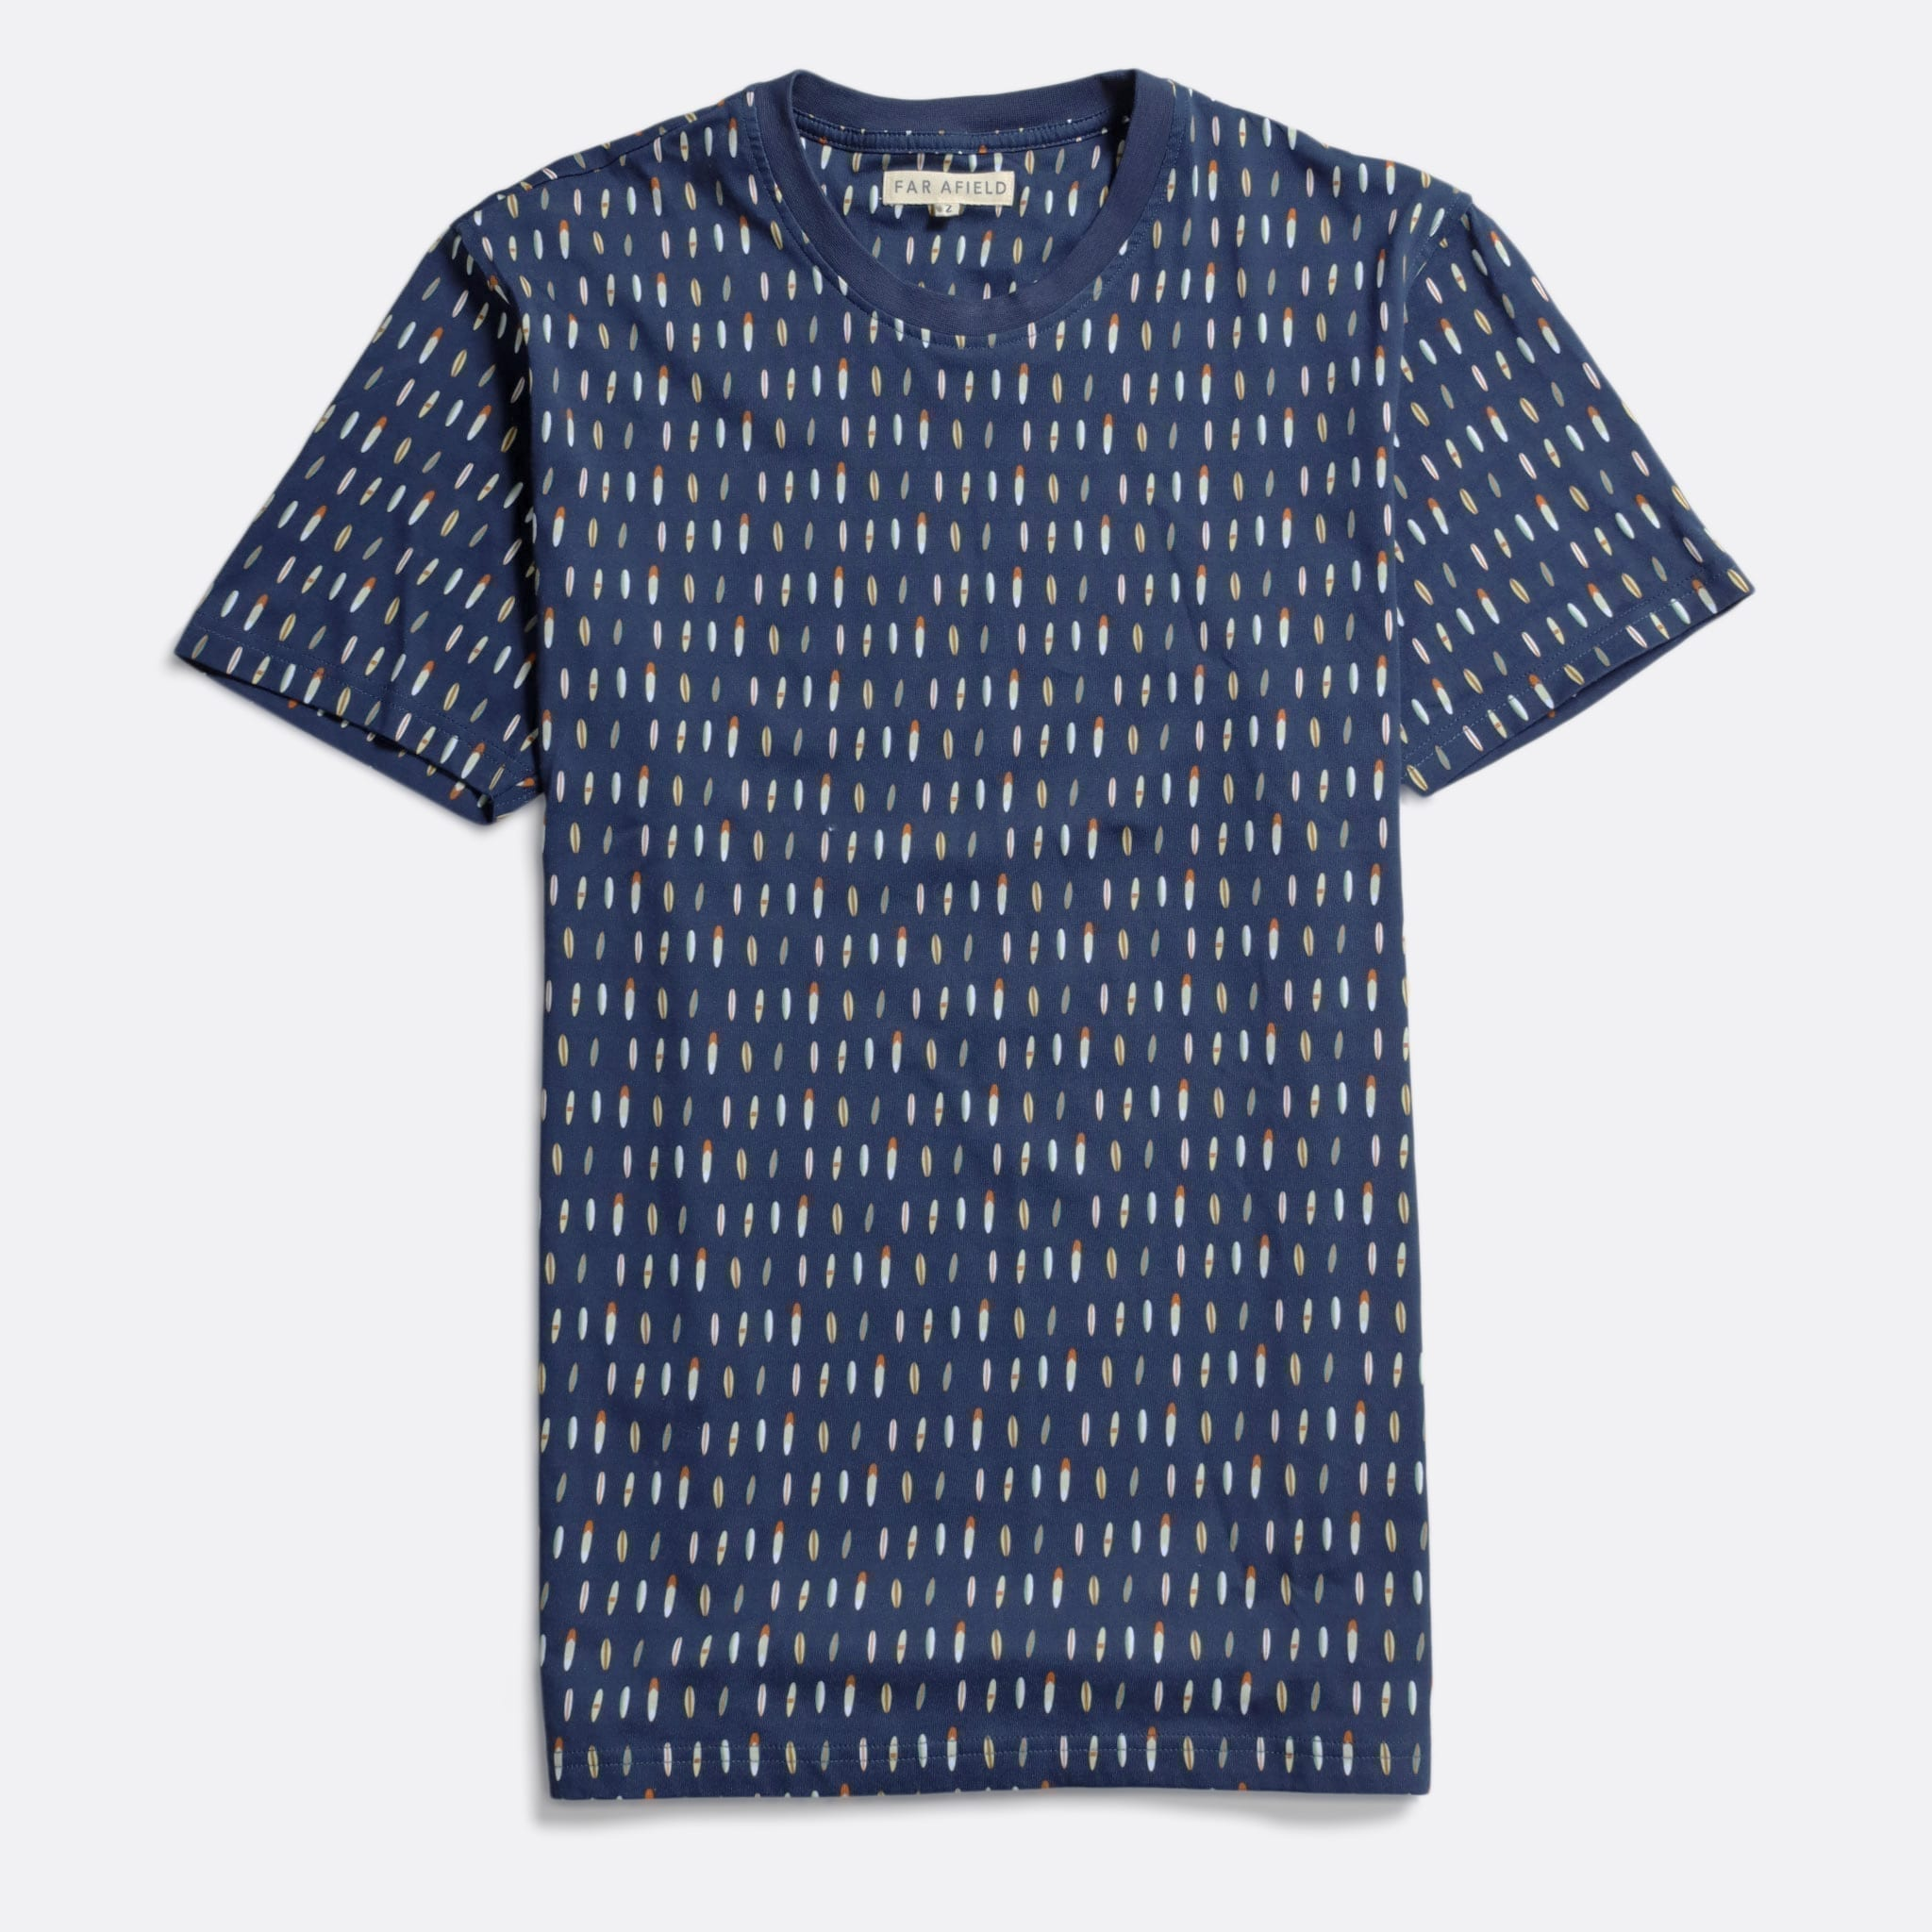 Far Afield Printed T-Shirt a Navy Organic Cotton Print Fabriced Casual Basics